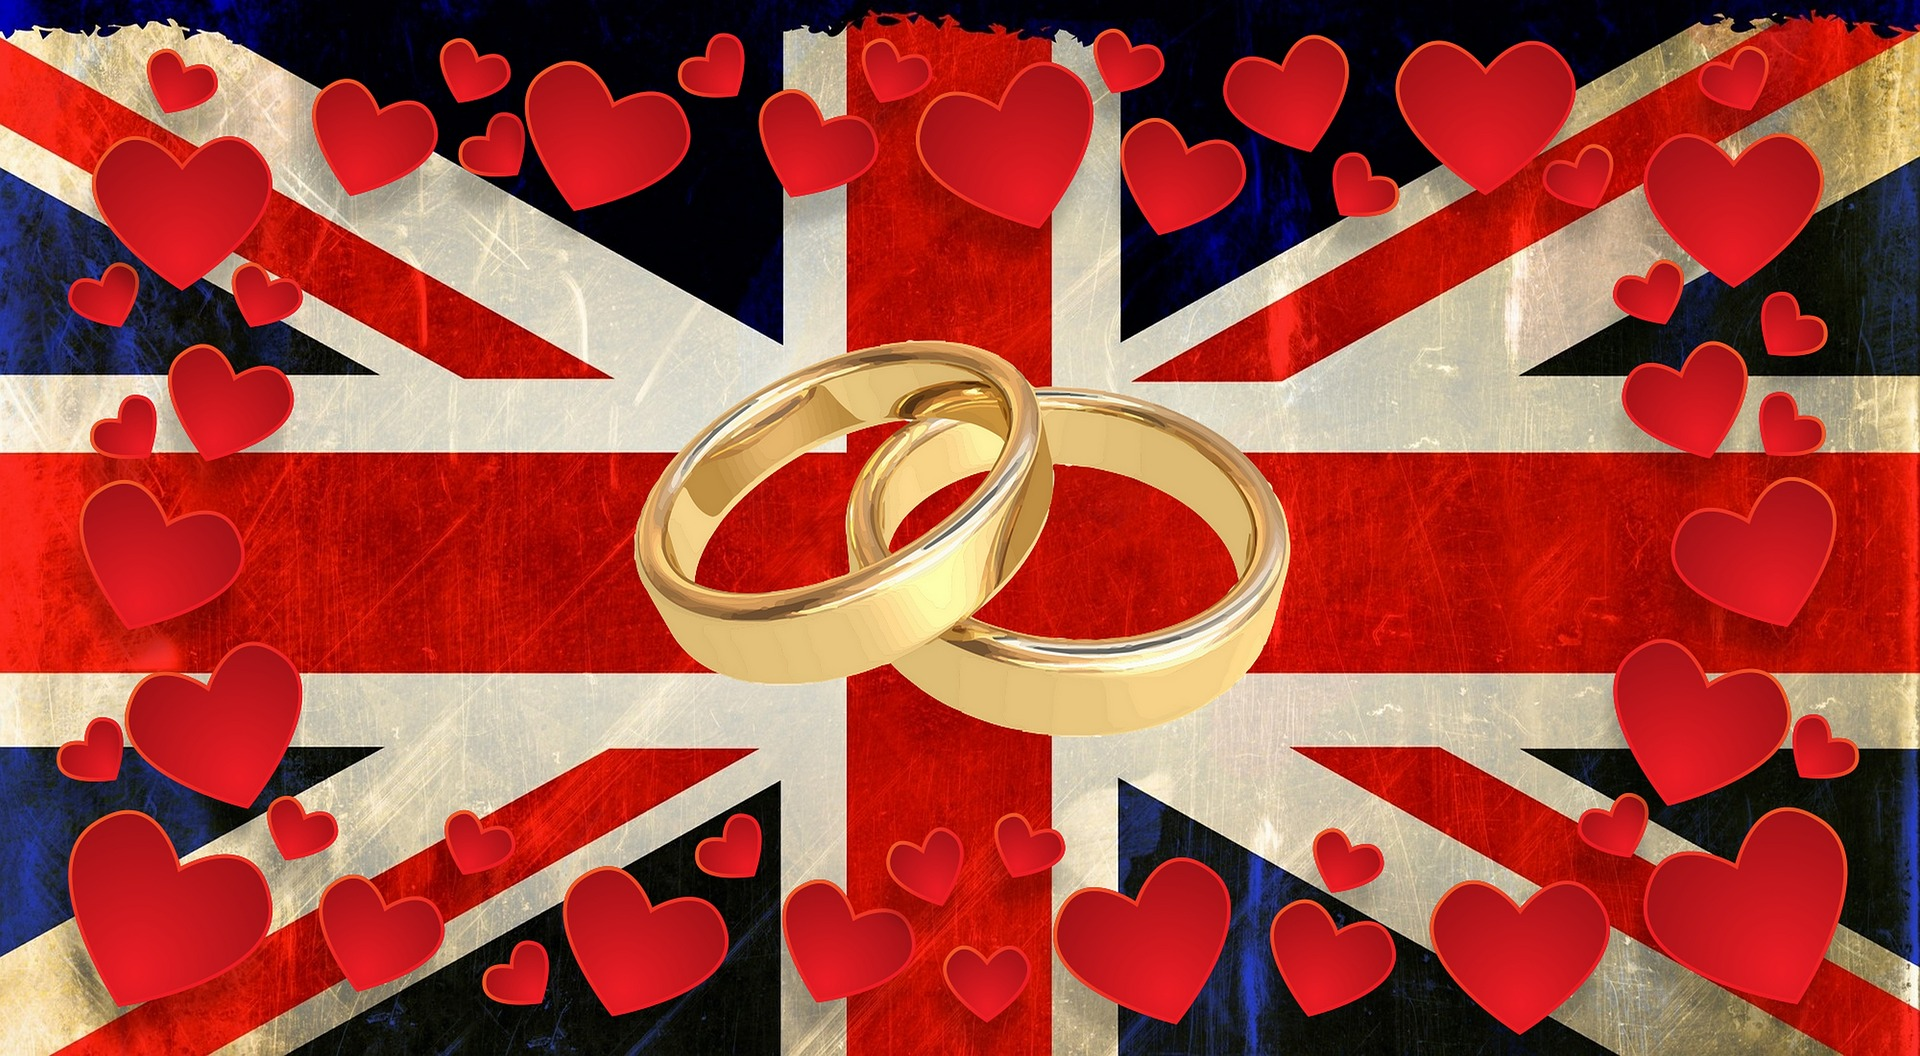 royal-wedding-3411338_1920.jpg